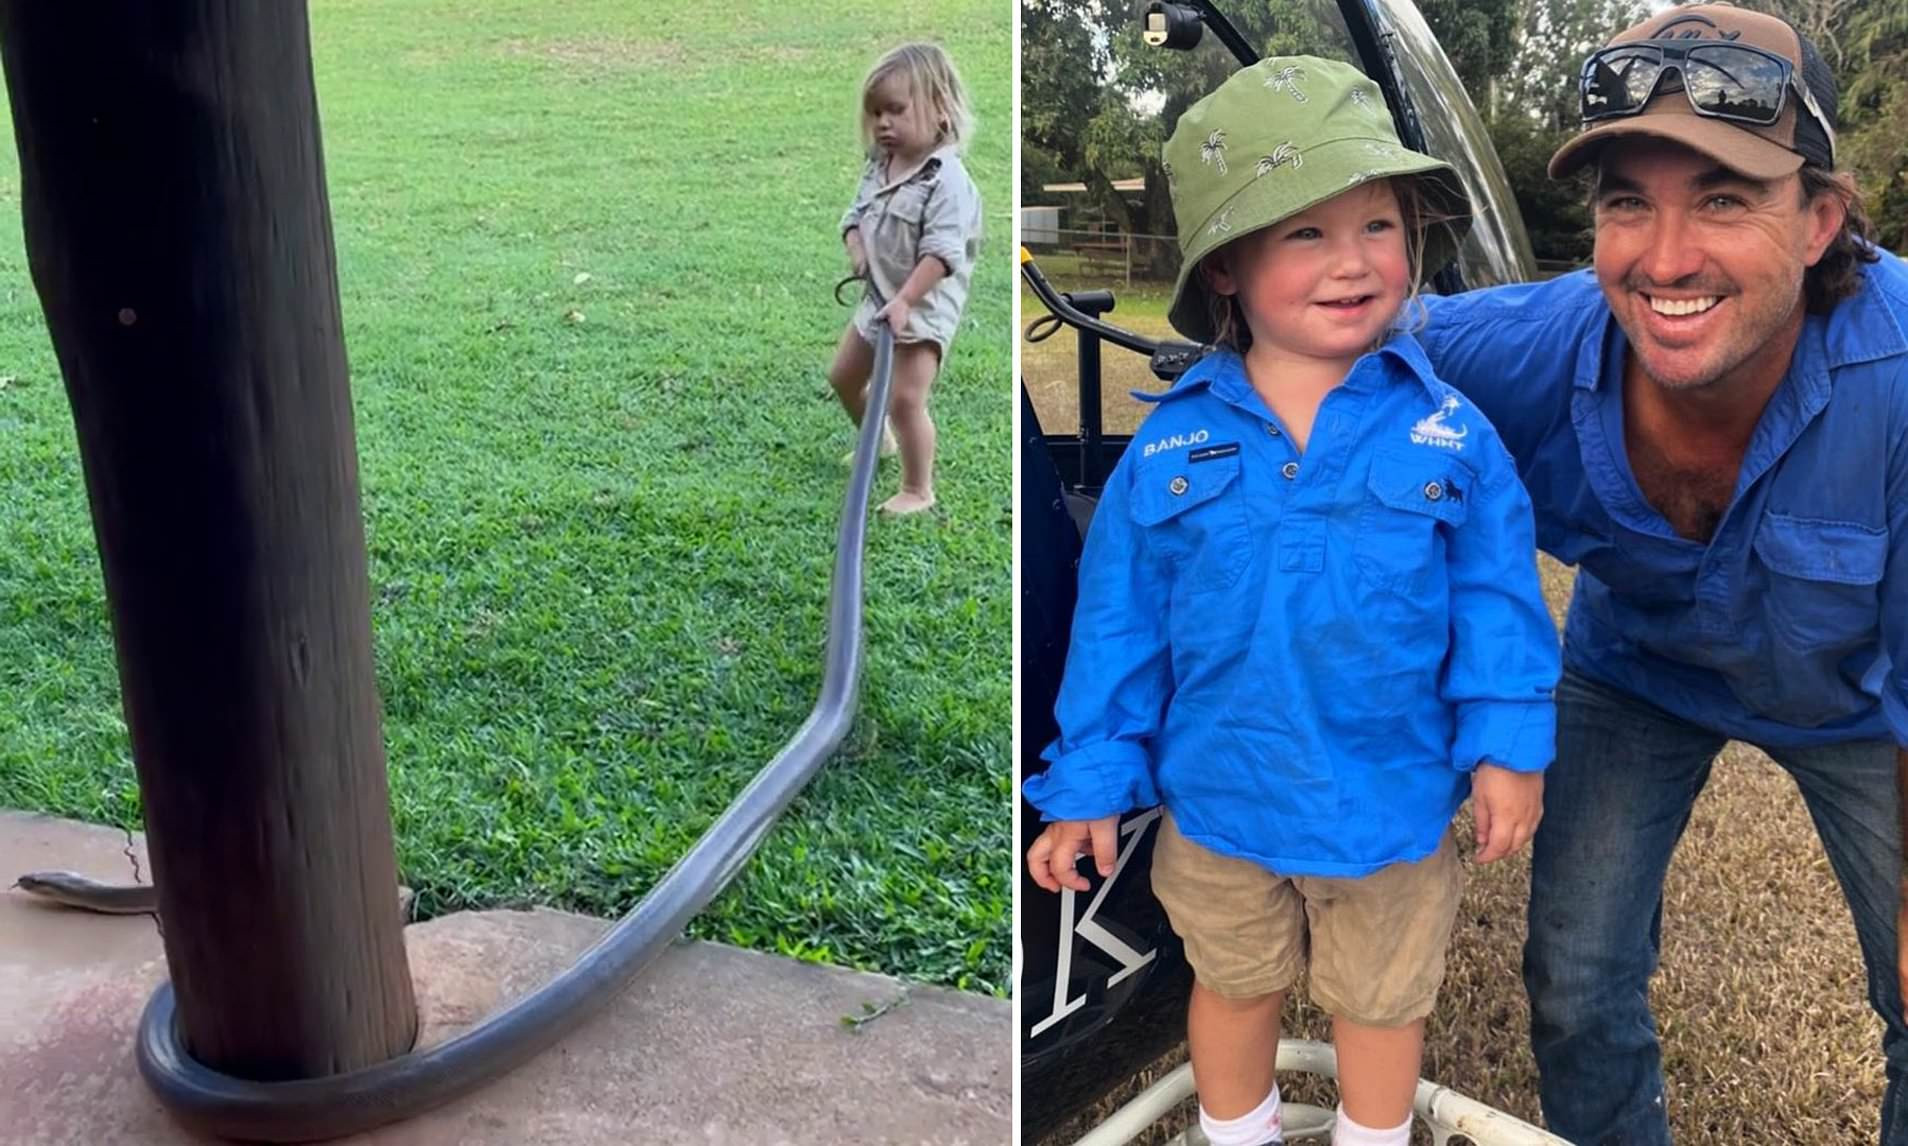 Wildlife host faces backlash for letting 2-year-old handle giant snake (video)